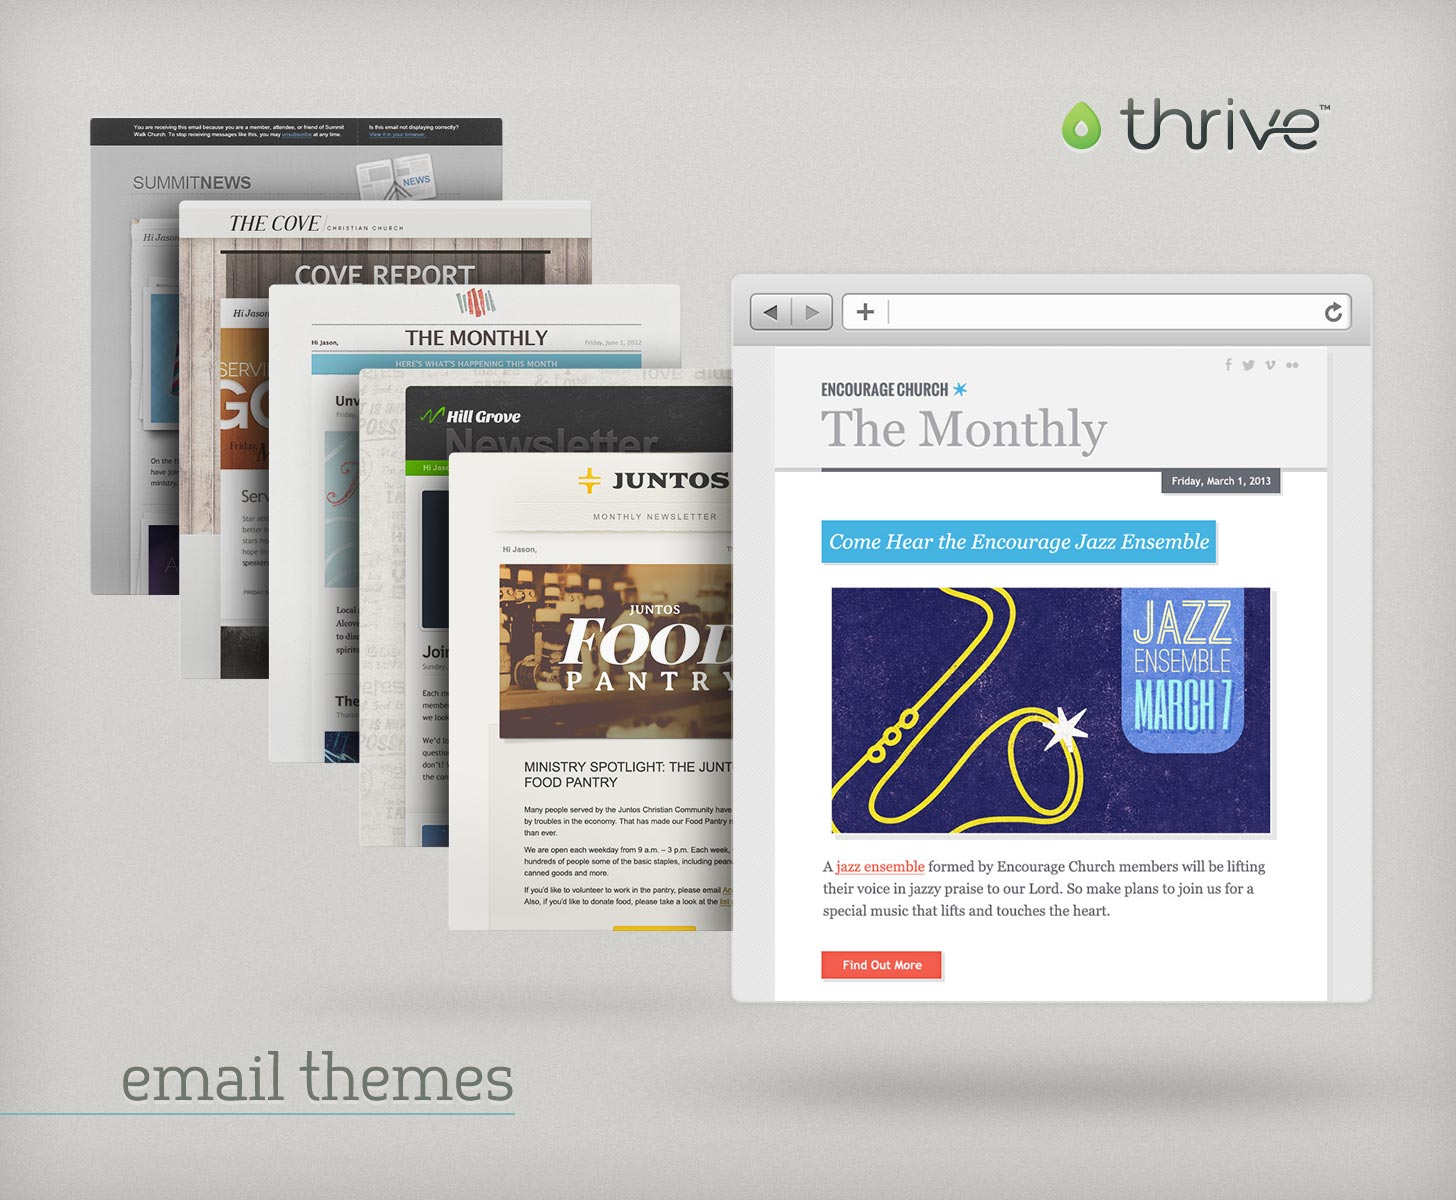 Thrive email themes